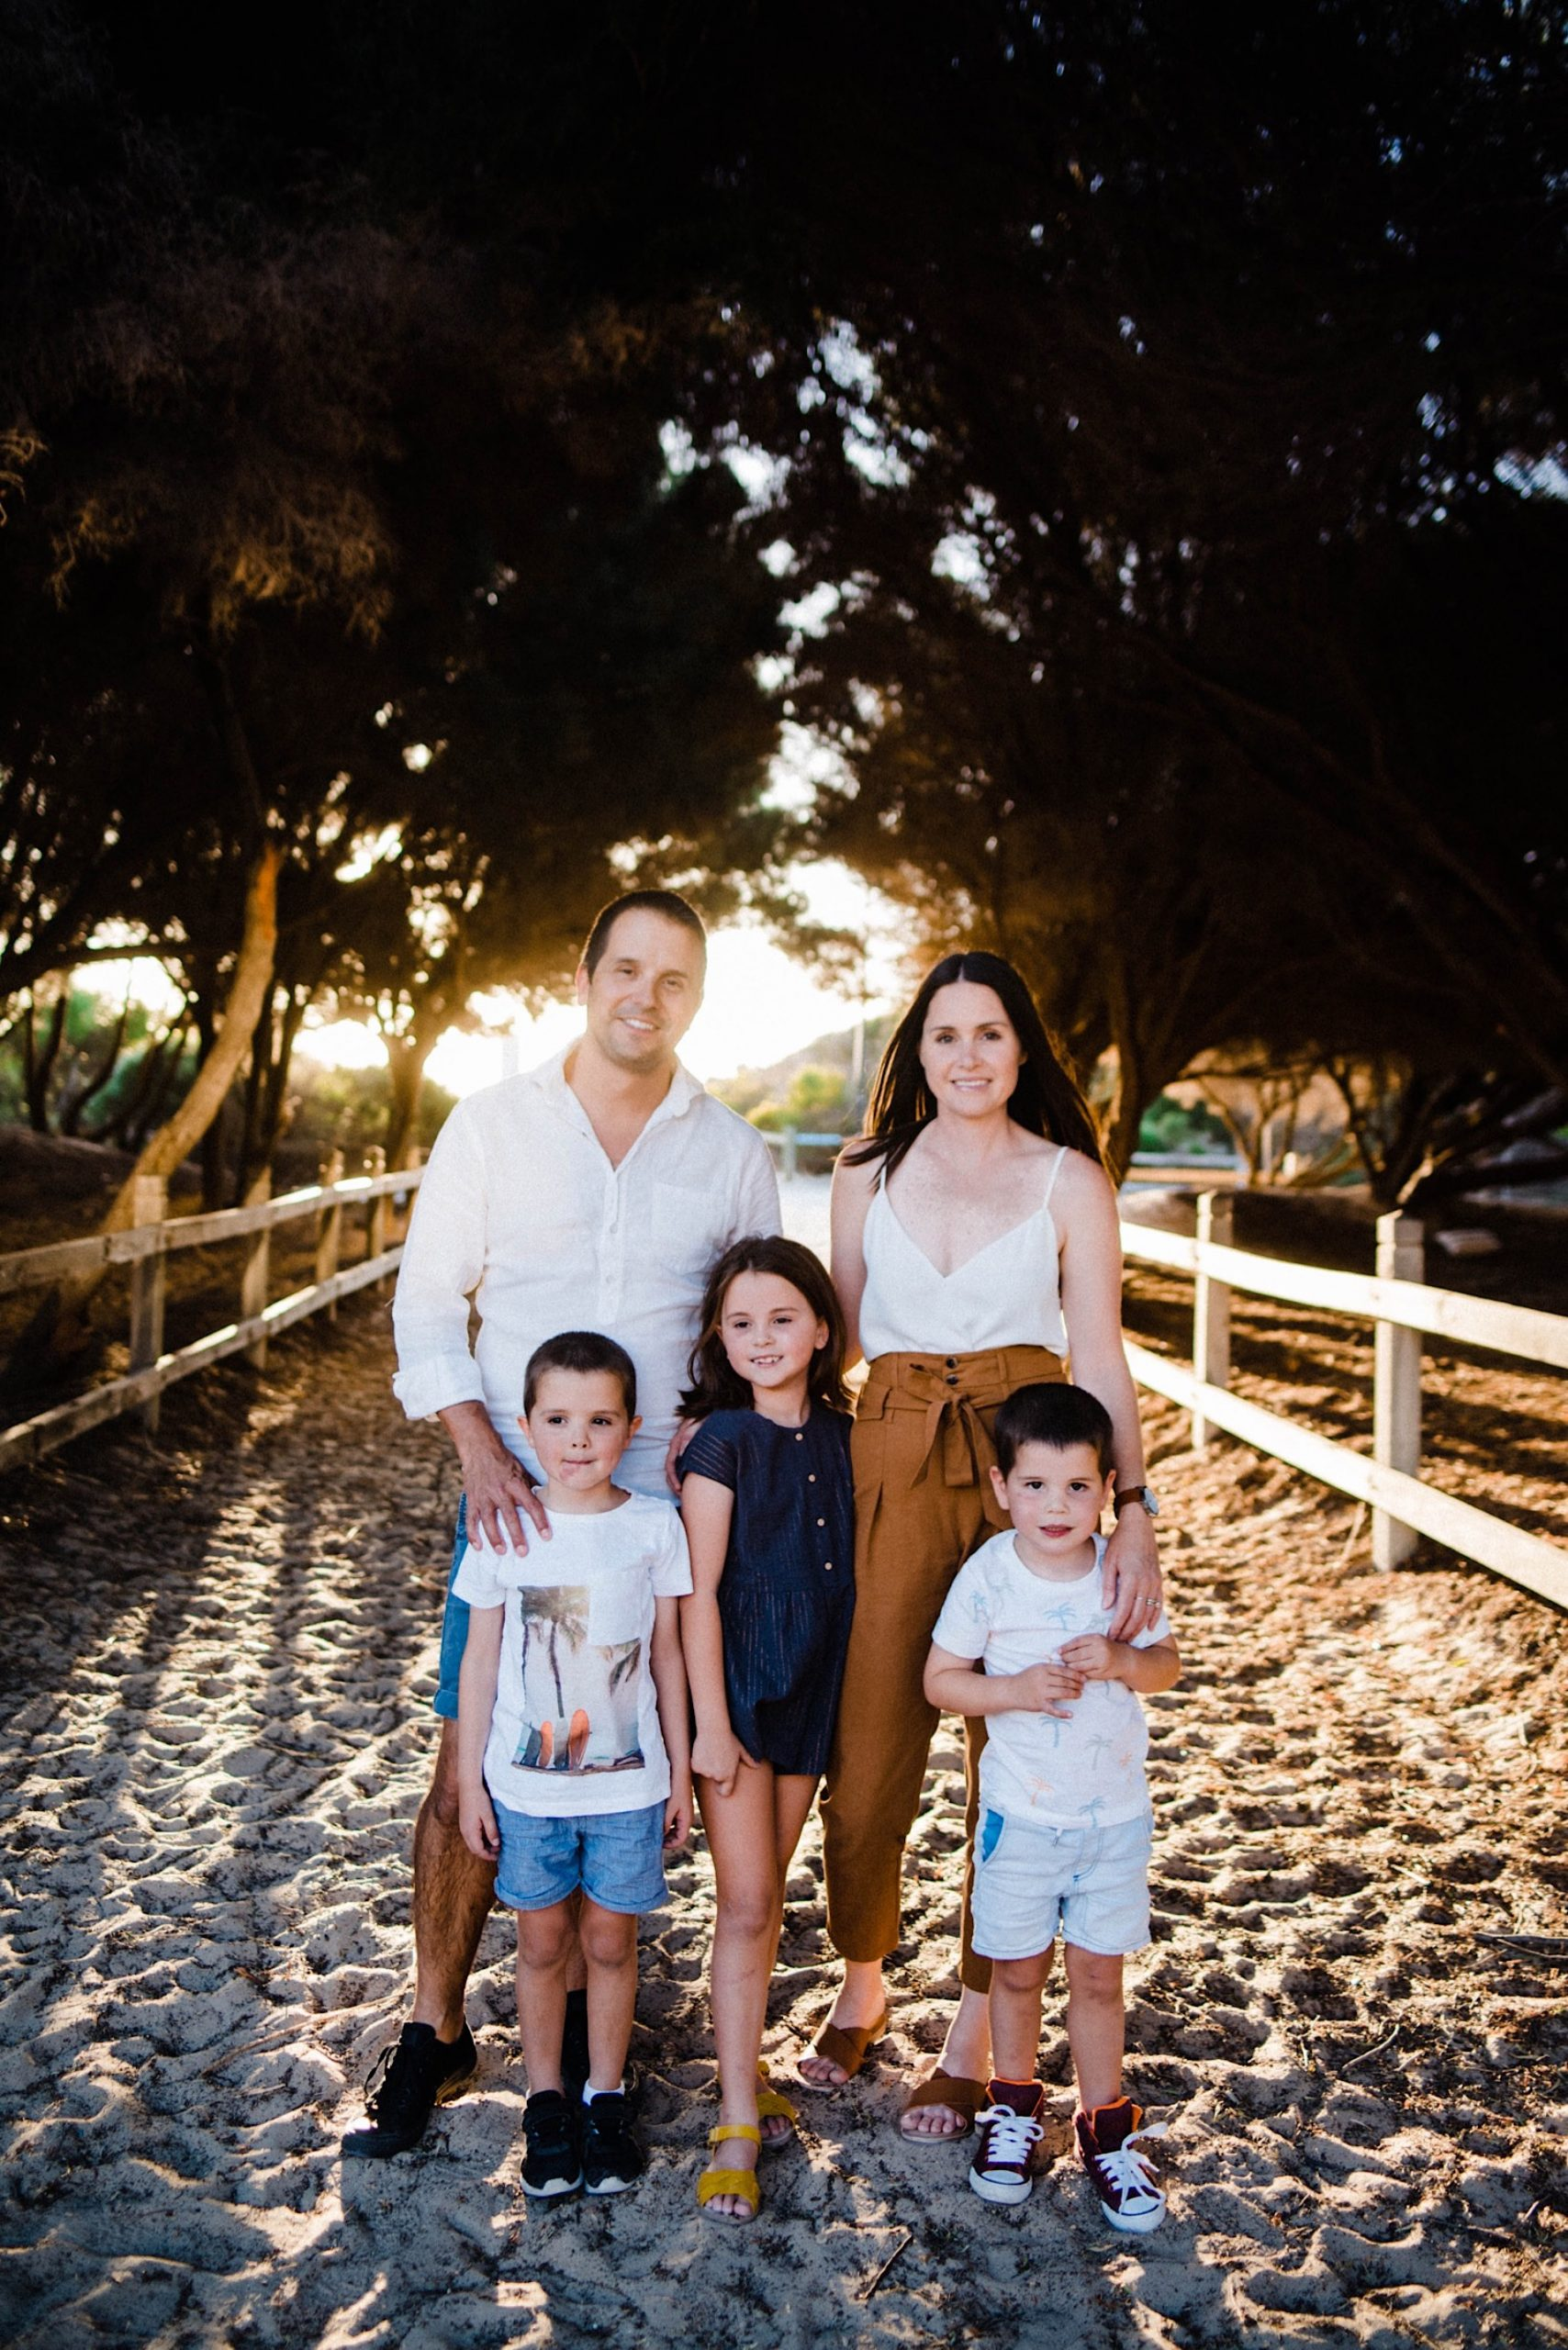 A portrait-oriented photo of a family of five standing on the beach, surrounded by trees, with golden light in the background.